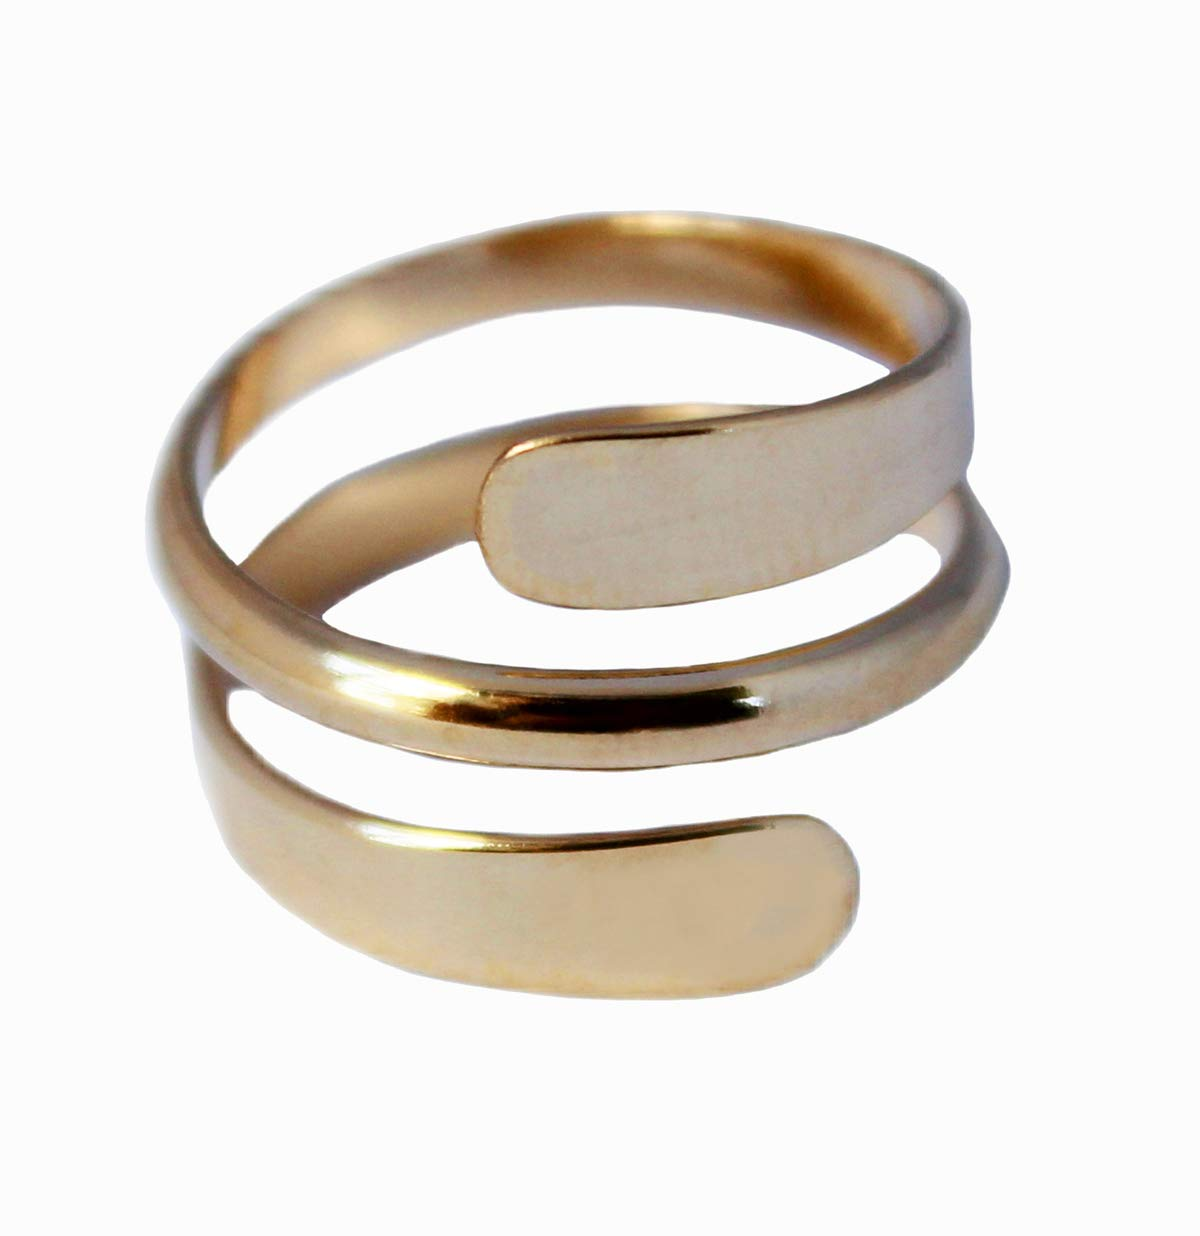 Toe Ring | 14K Gold Filled Yoga Wrap | Adjustable Ring for Toe or Midi | for Men or Women by Toe Rings and Things